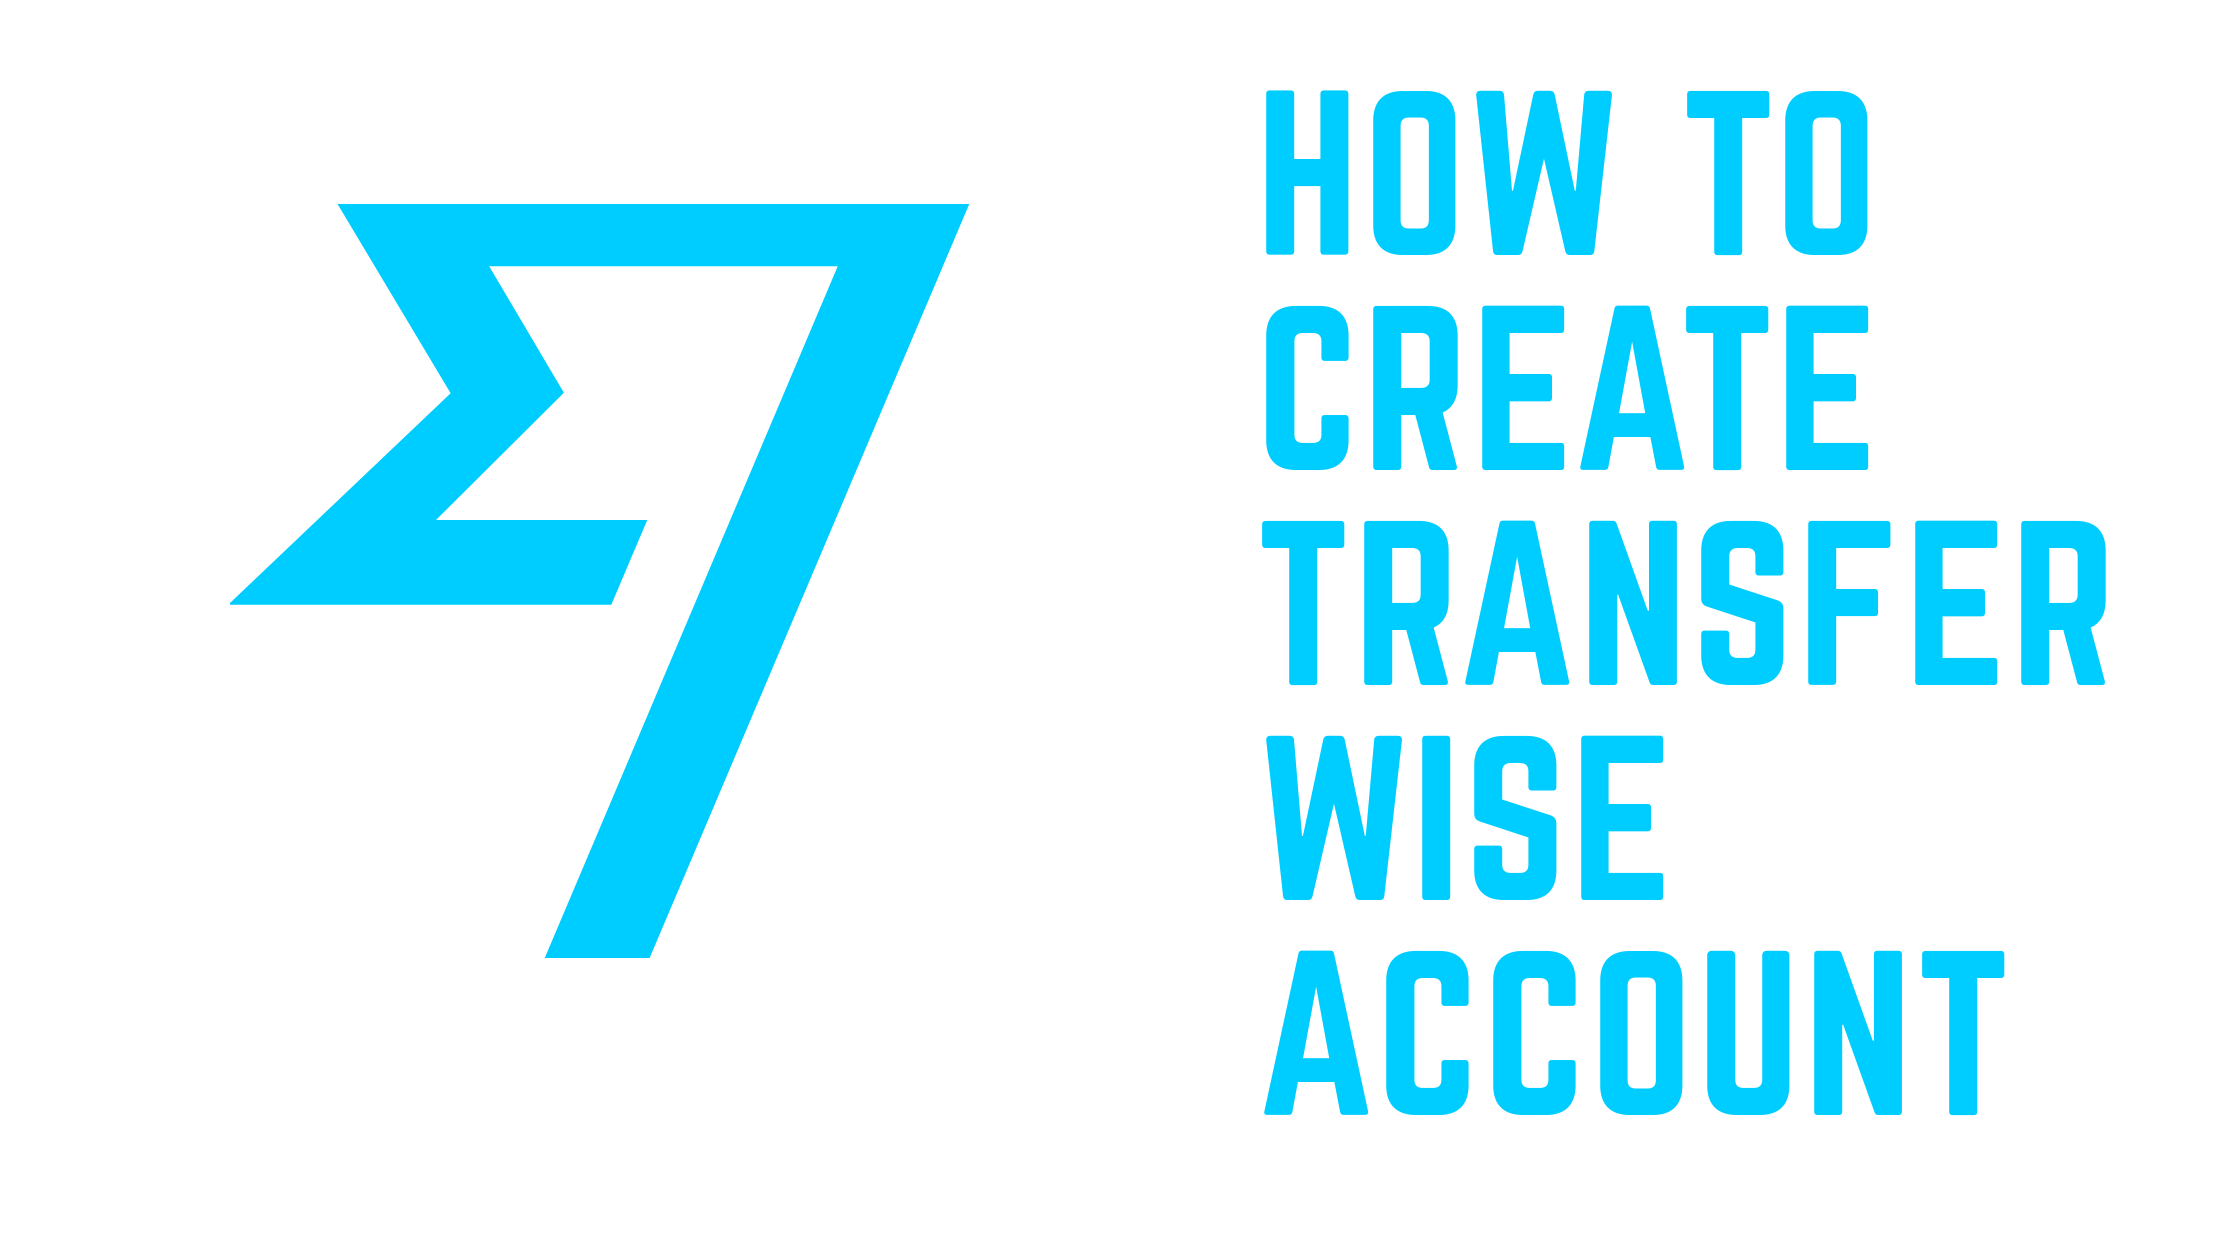 How to create transferwise account